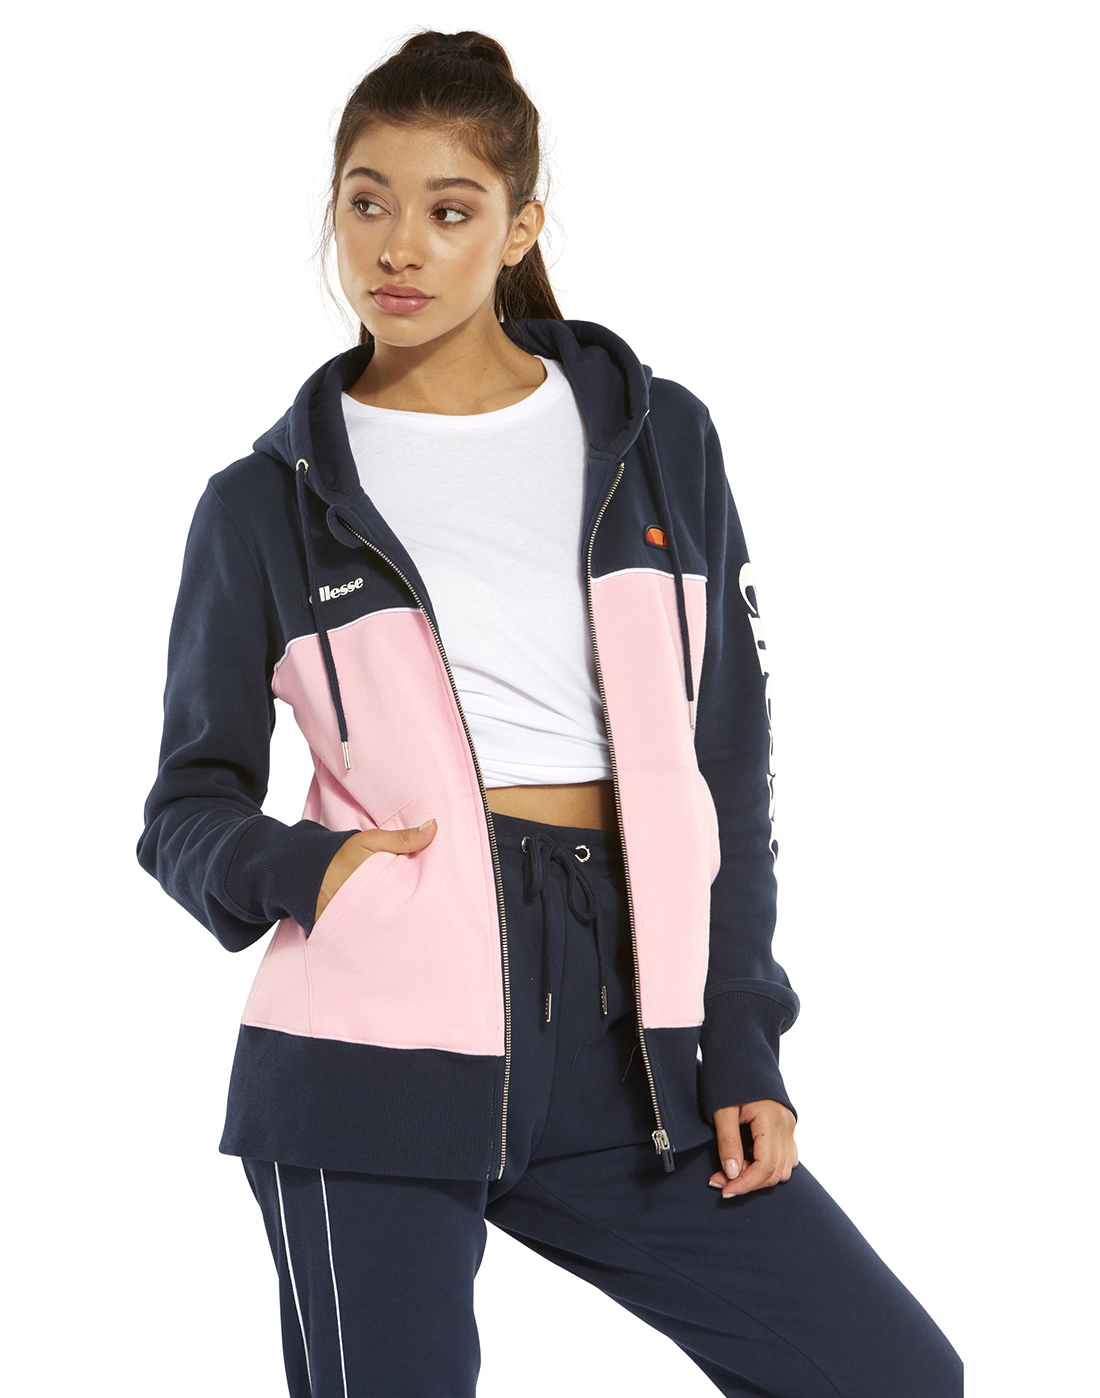 Linea del sito Accompagnare Seminario  Women's Navy & Pink Ellesse Hoodie   Life Style Sports